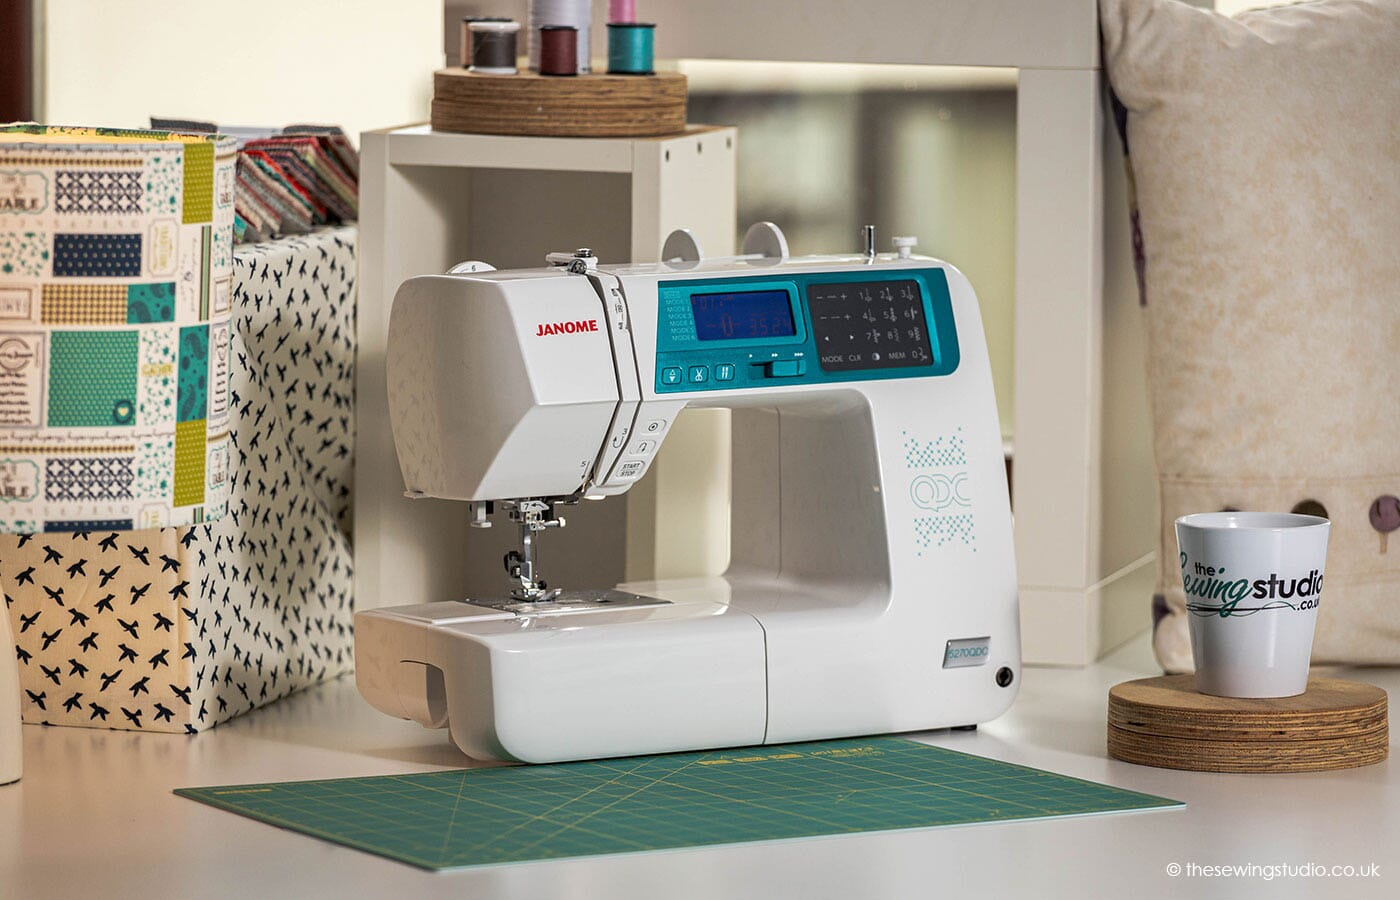 Janome 5270QDC Sewing Machine in a Sewing Room